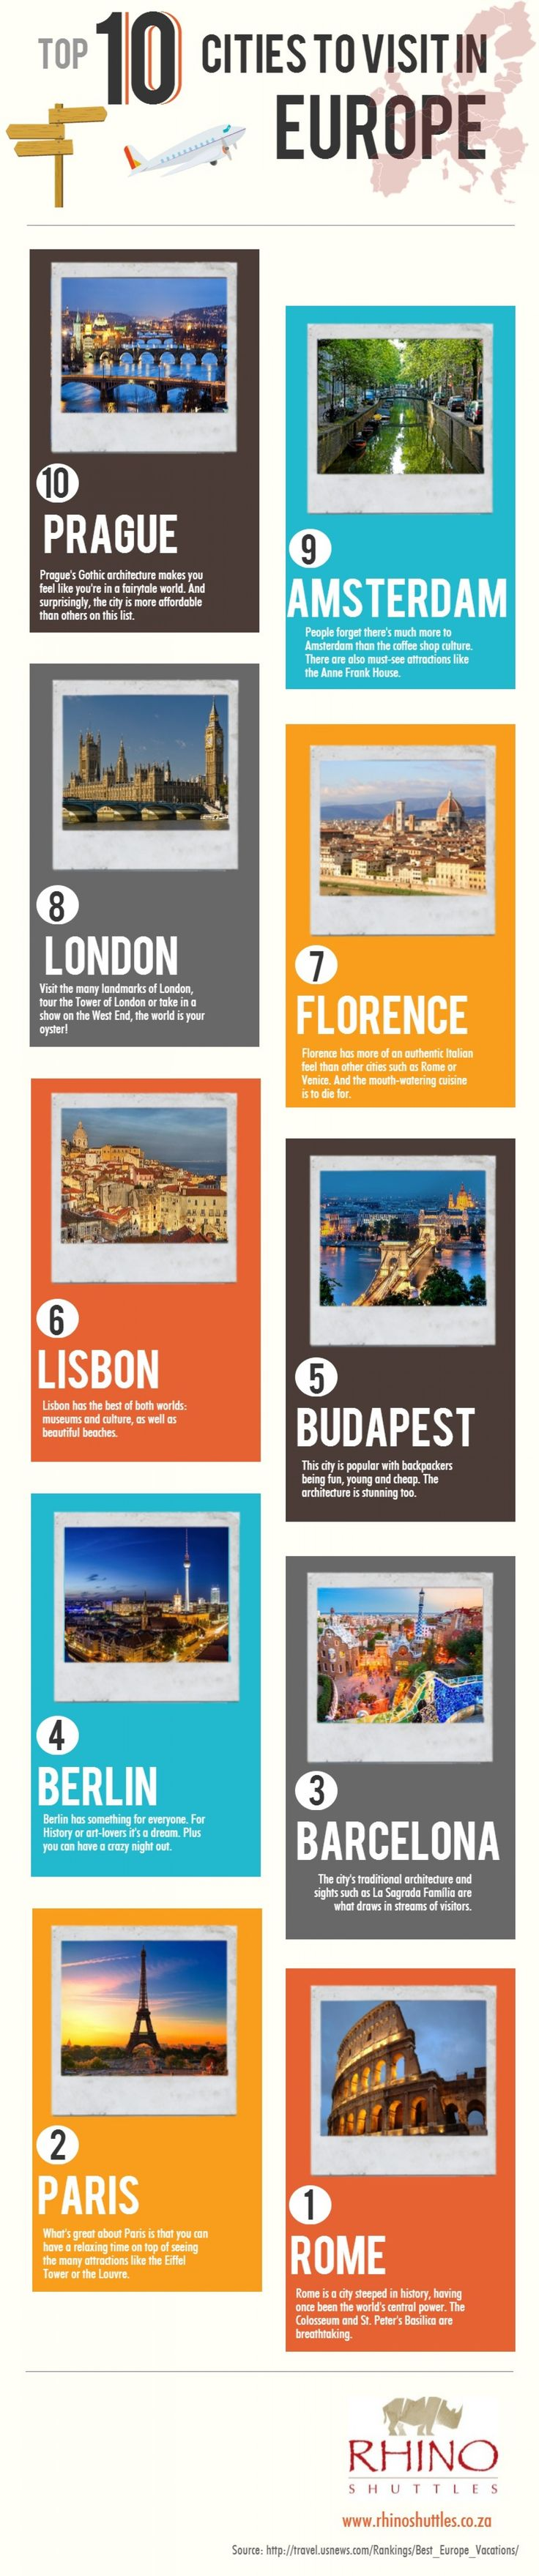 Top 10 Cities To Visit In Europe #infographic #Europe #Travel By the end of this semester, I would've hit all of these!